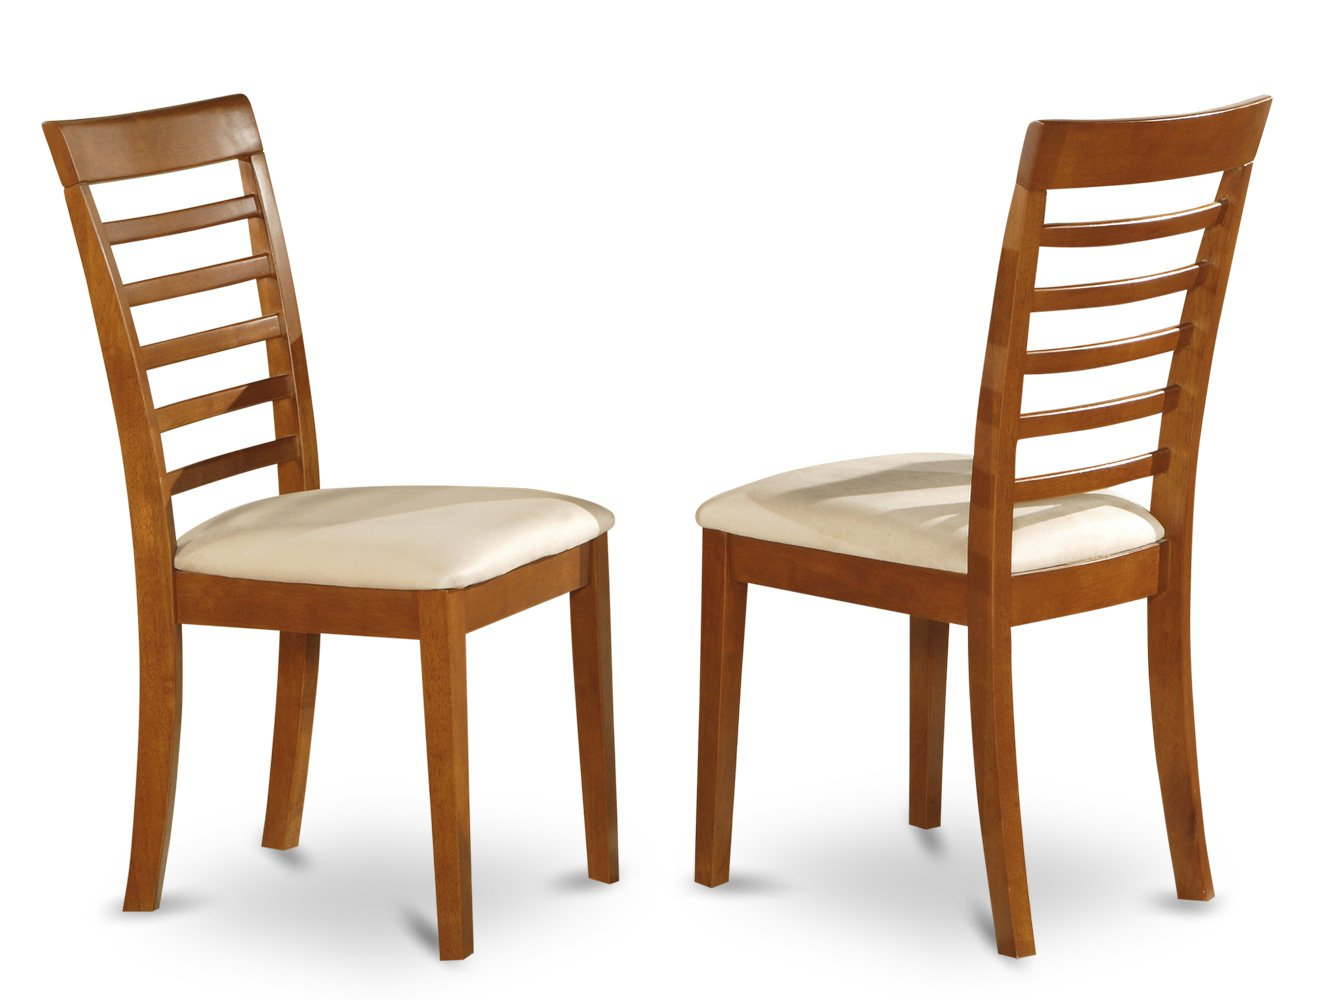 Set of 2 Milan Ladder slat back dining room chairs with  seat in Mahogany finish.